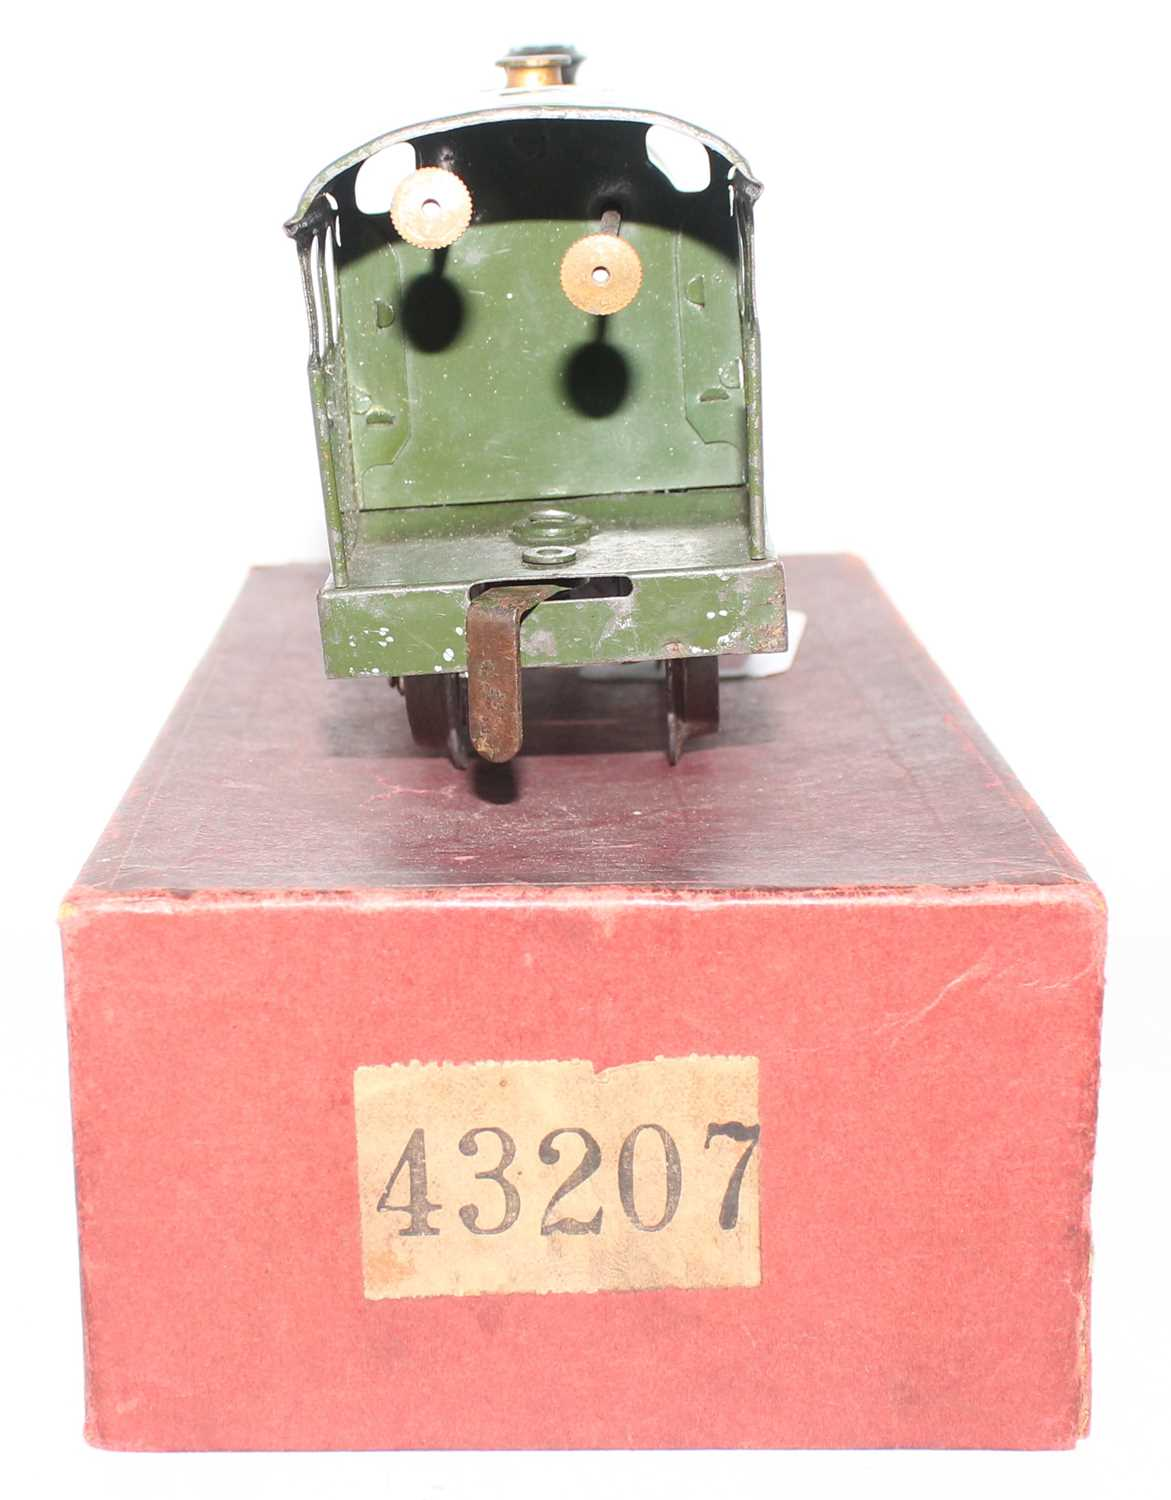 Hornby 1931-35 Clockwork No.0 revised body style 0-4-0 loco only, missing tender, GW Green, No. - Image 4 of 4